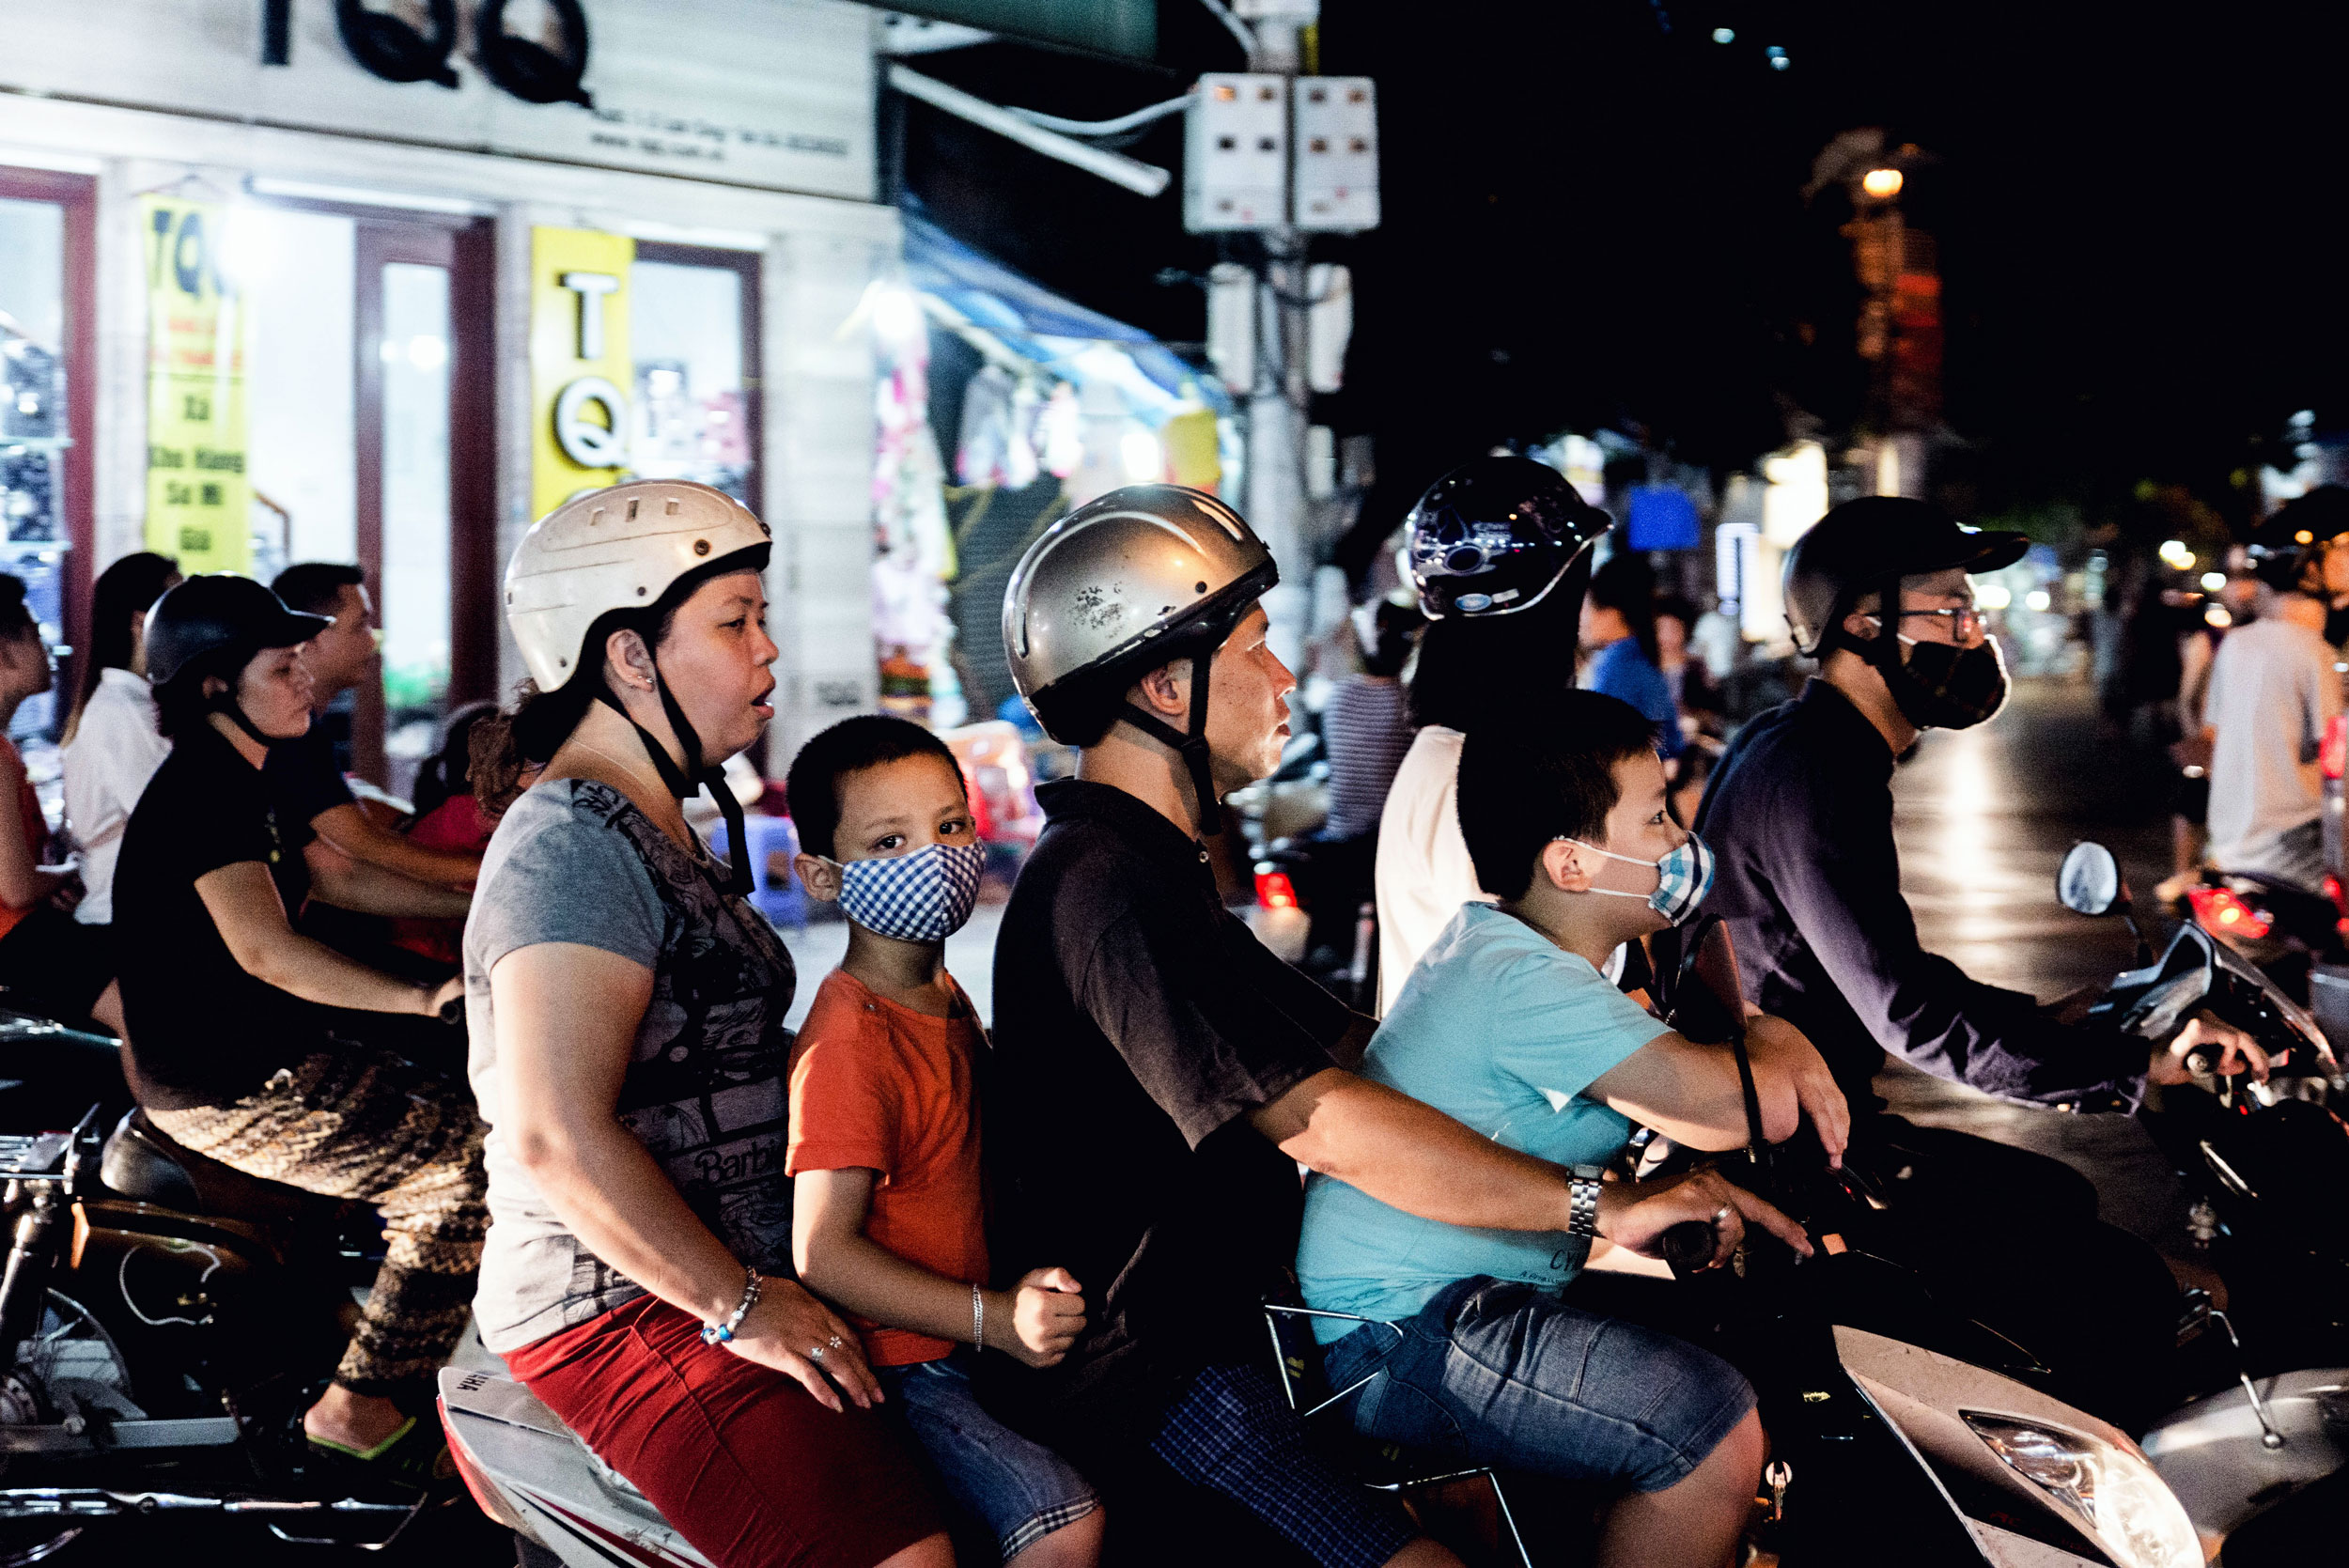 A family rides together on a moped in Hanoi